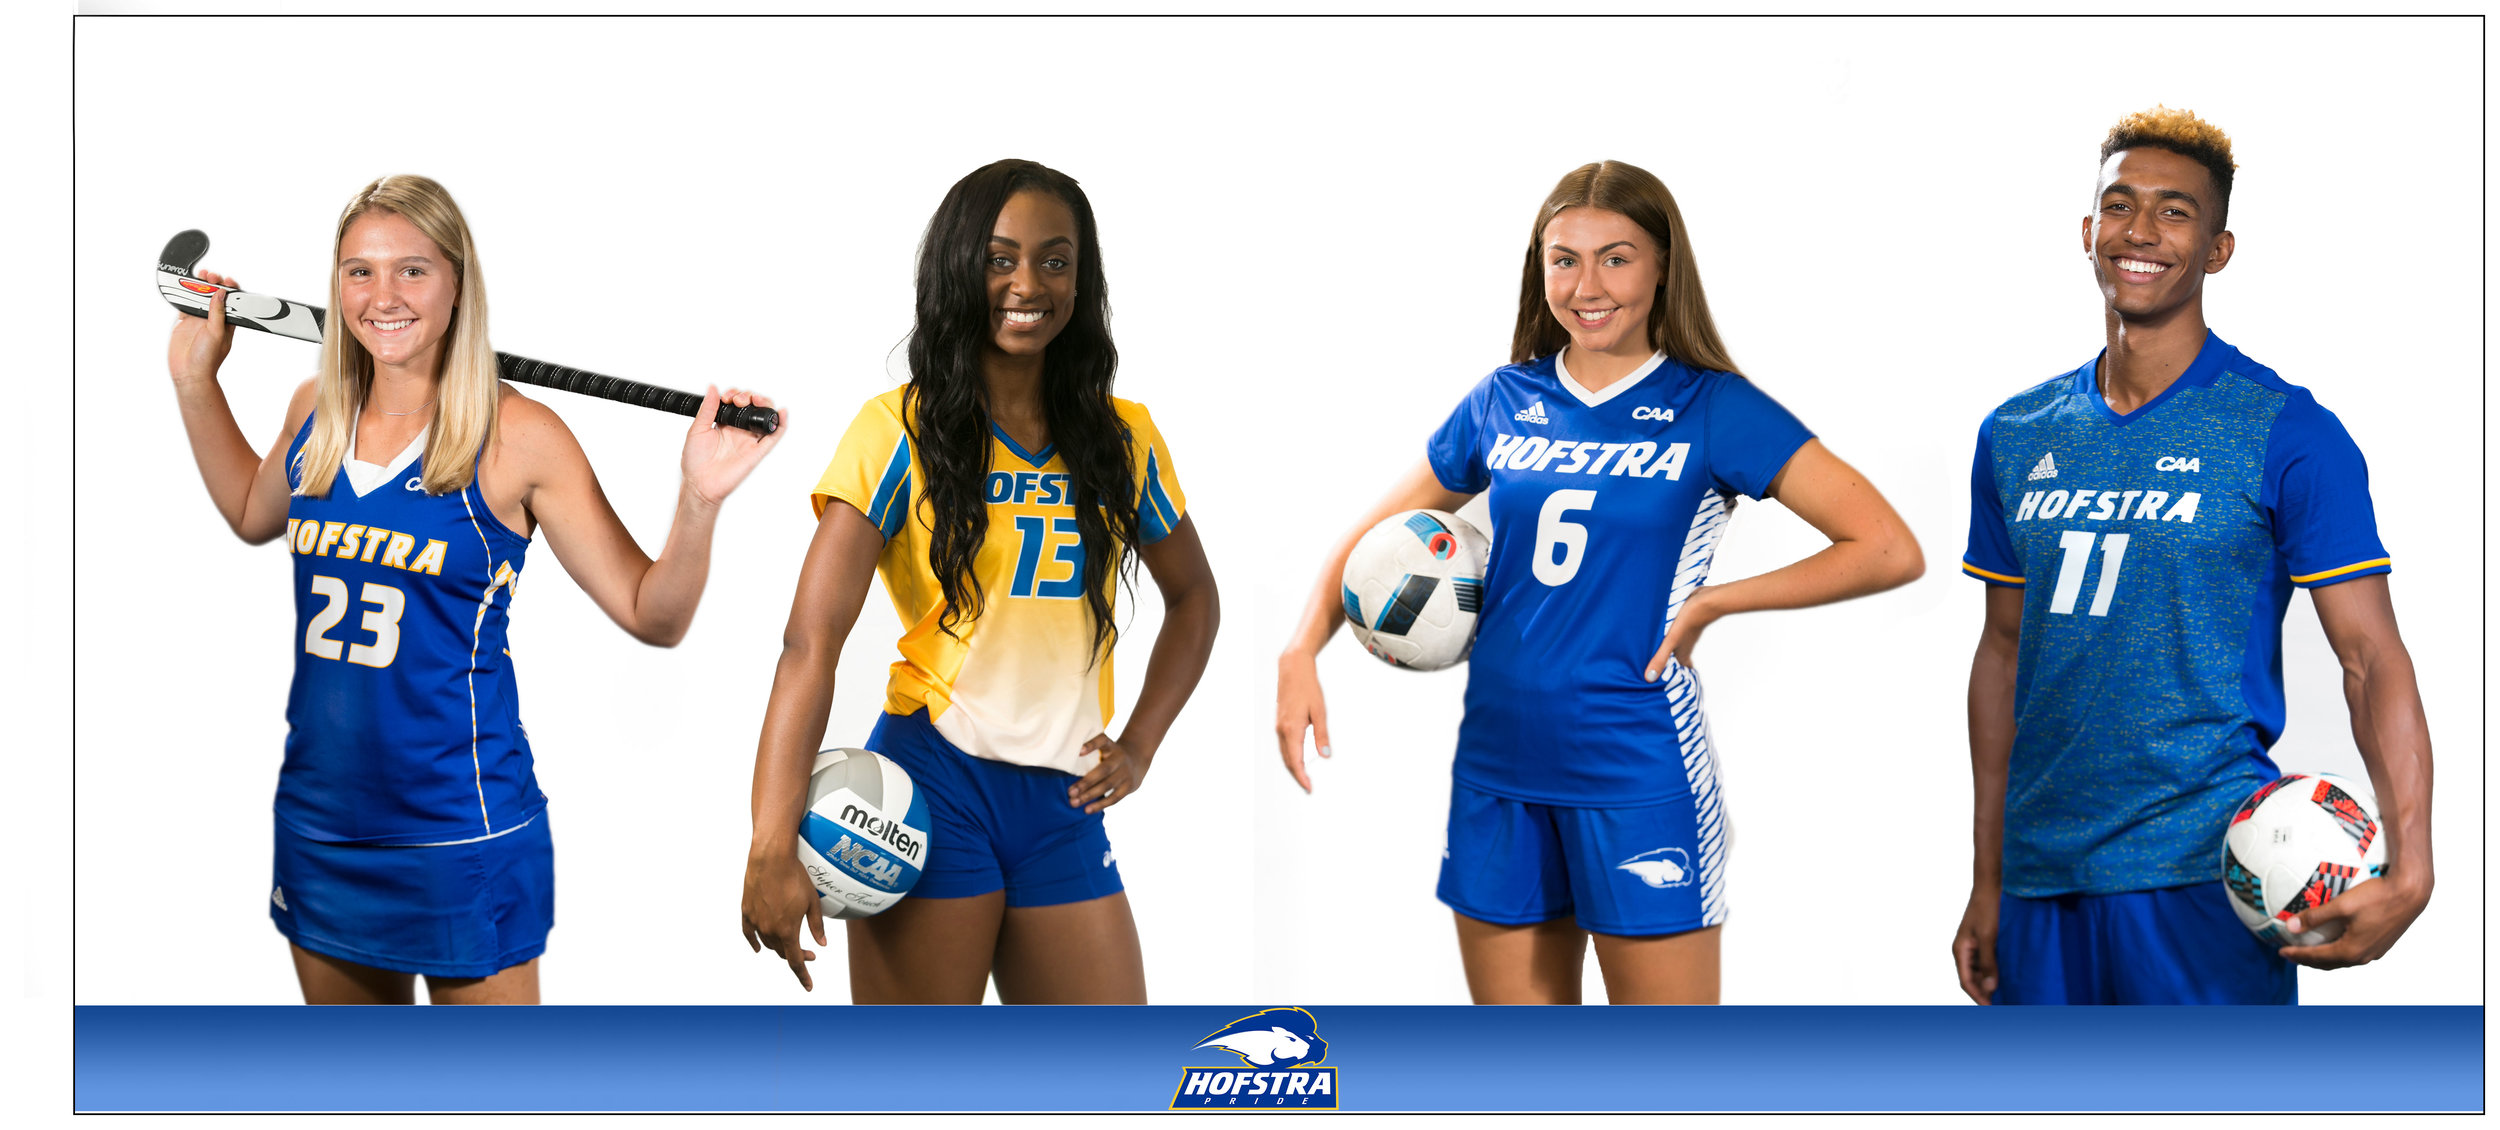 Hofstra University Fall Sports 2017 collage